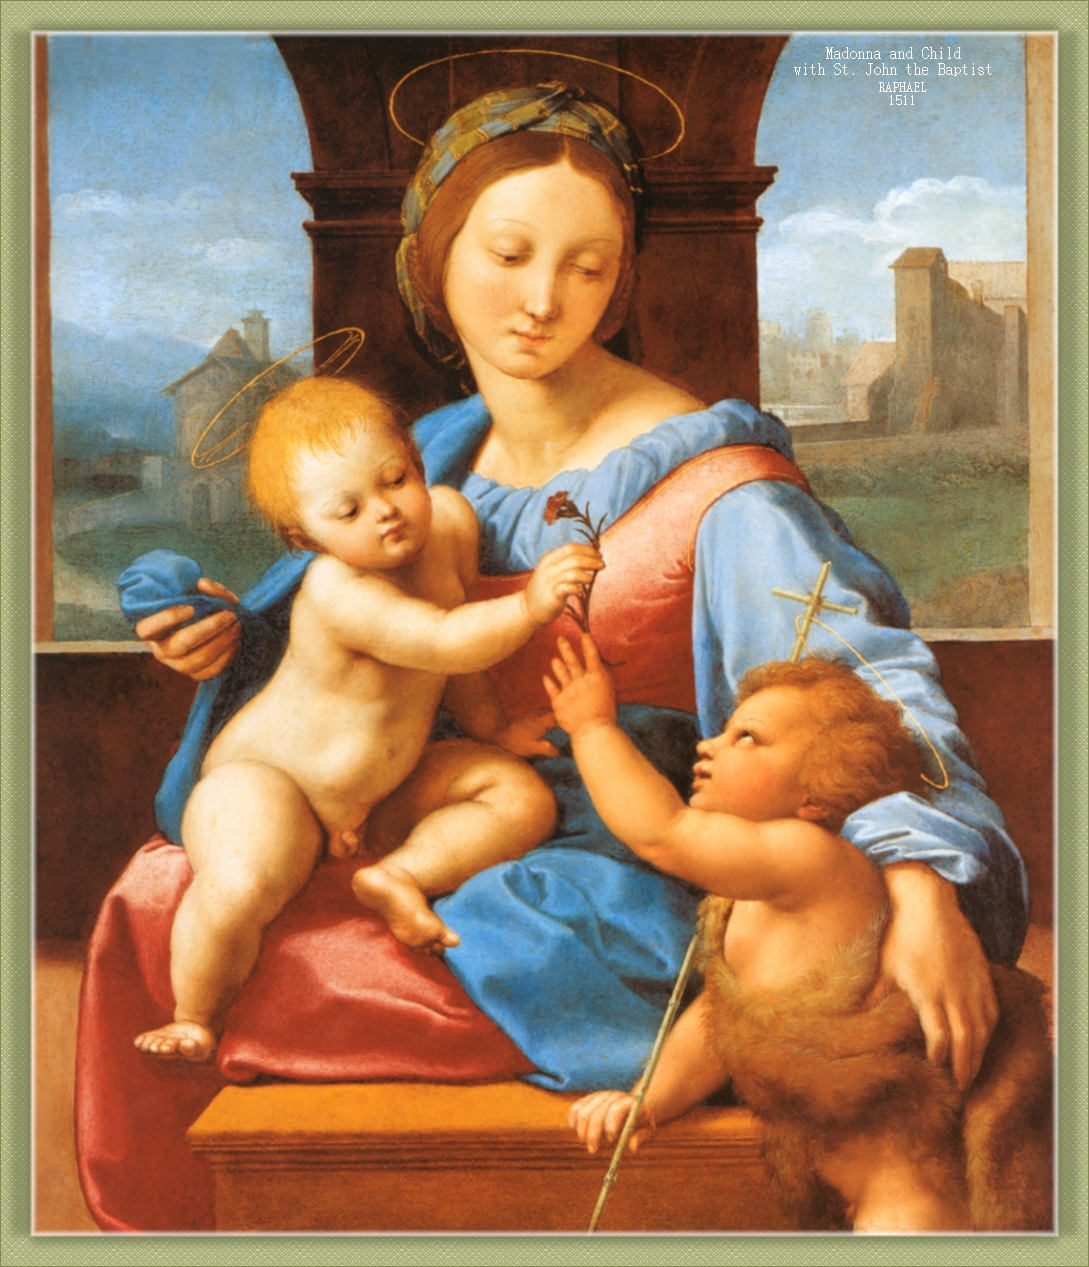 raphaels madonna of the meadows essay Masques & phases, by robert ross the project gutenberg ebook, masques & phases, by robert ross this ebook is for the use of anyone anywhere at no cost and with almost no restrictions whatsoever.